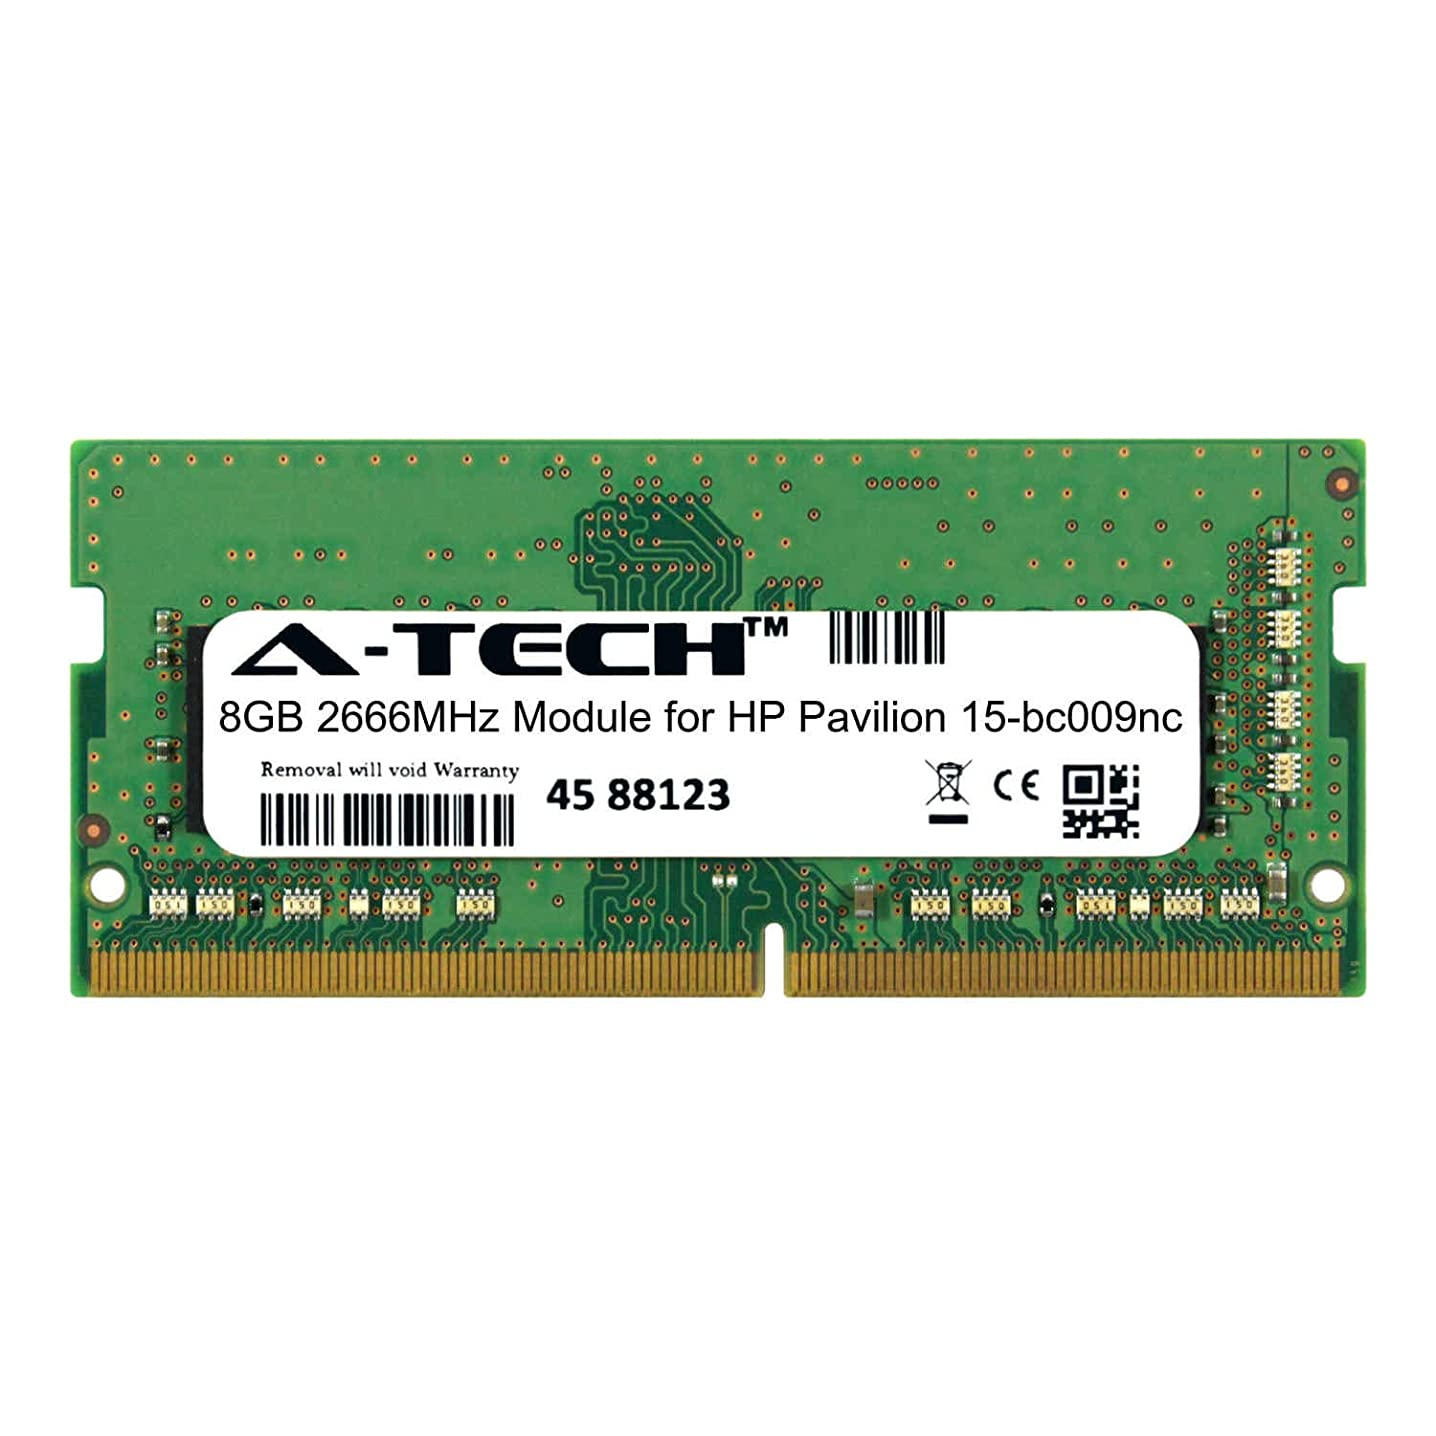 A-Tech 8GB Module for HP Pavilion 15-bc009nc Laptop & Notebook Compatible DDR4 2666Mhz Memory Ram (ATMS309017A25978X1)